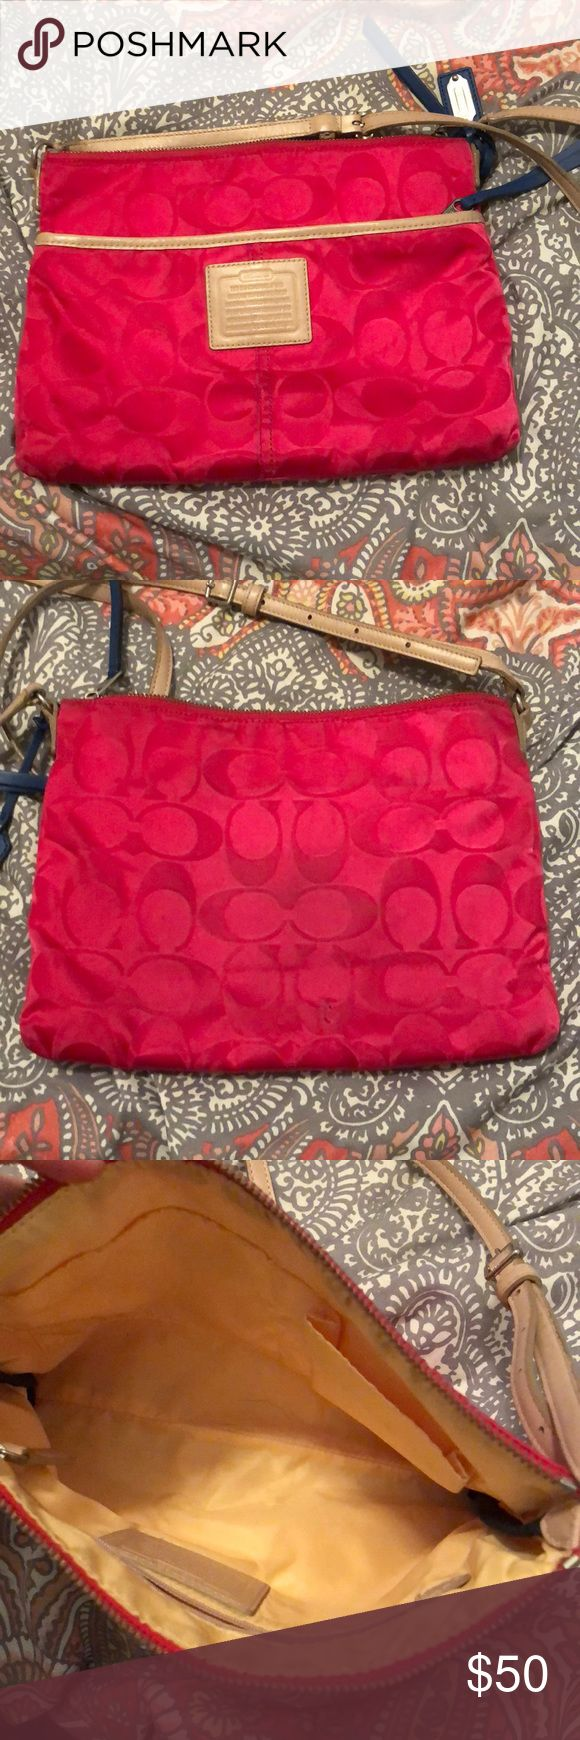 Coach crossbody Pink coach purse with blue zippers and yellow insides. Has a small blemish on the back. Coach Bags Crossbody Bags